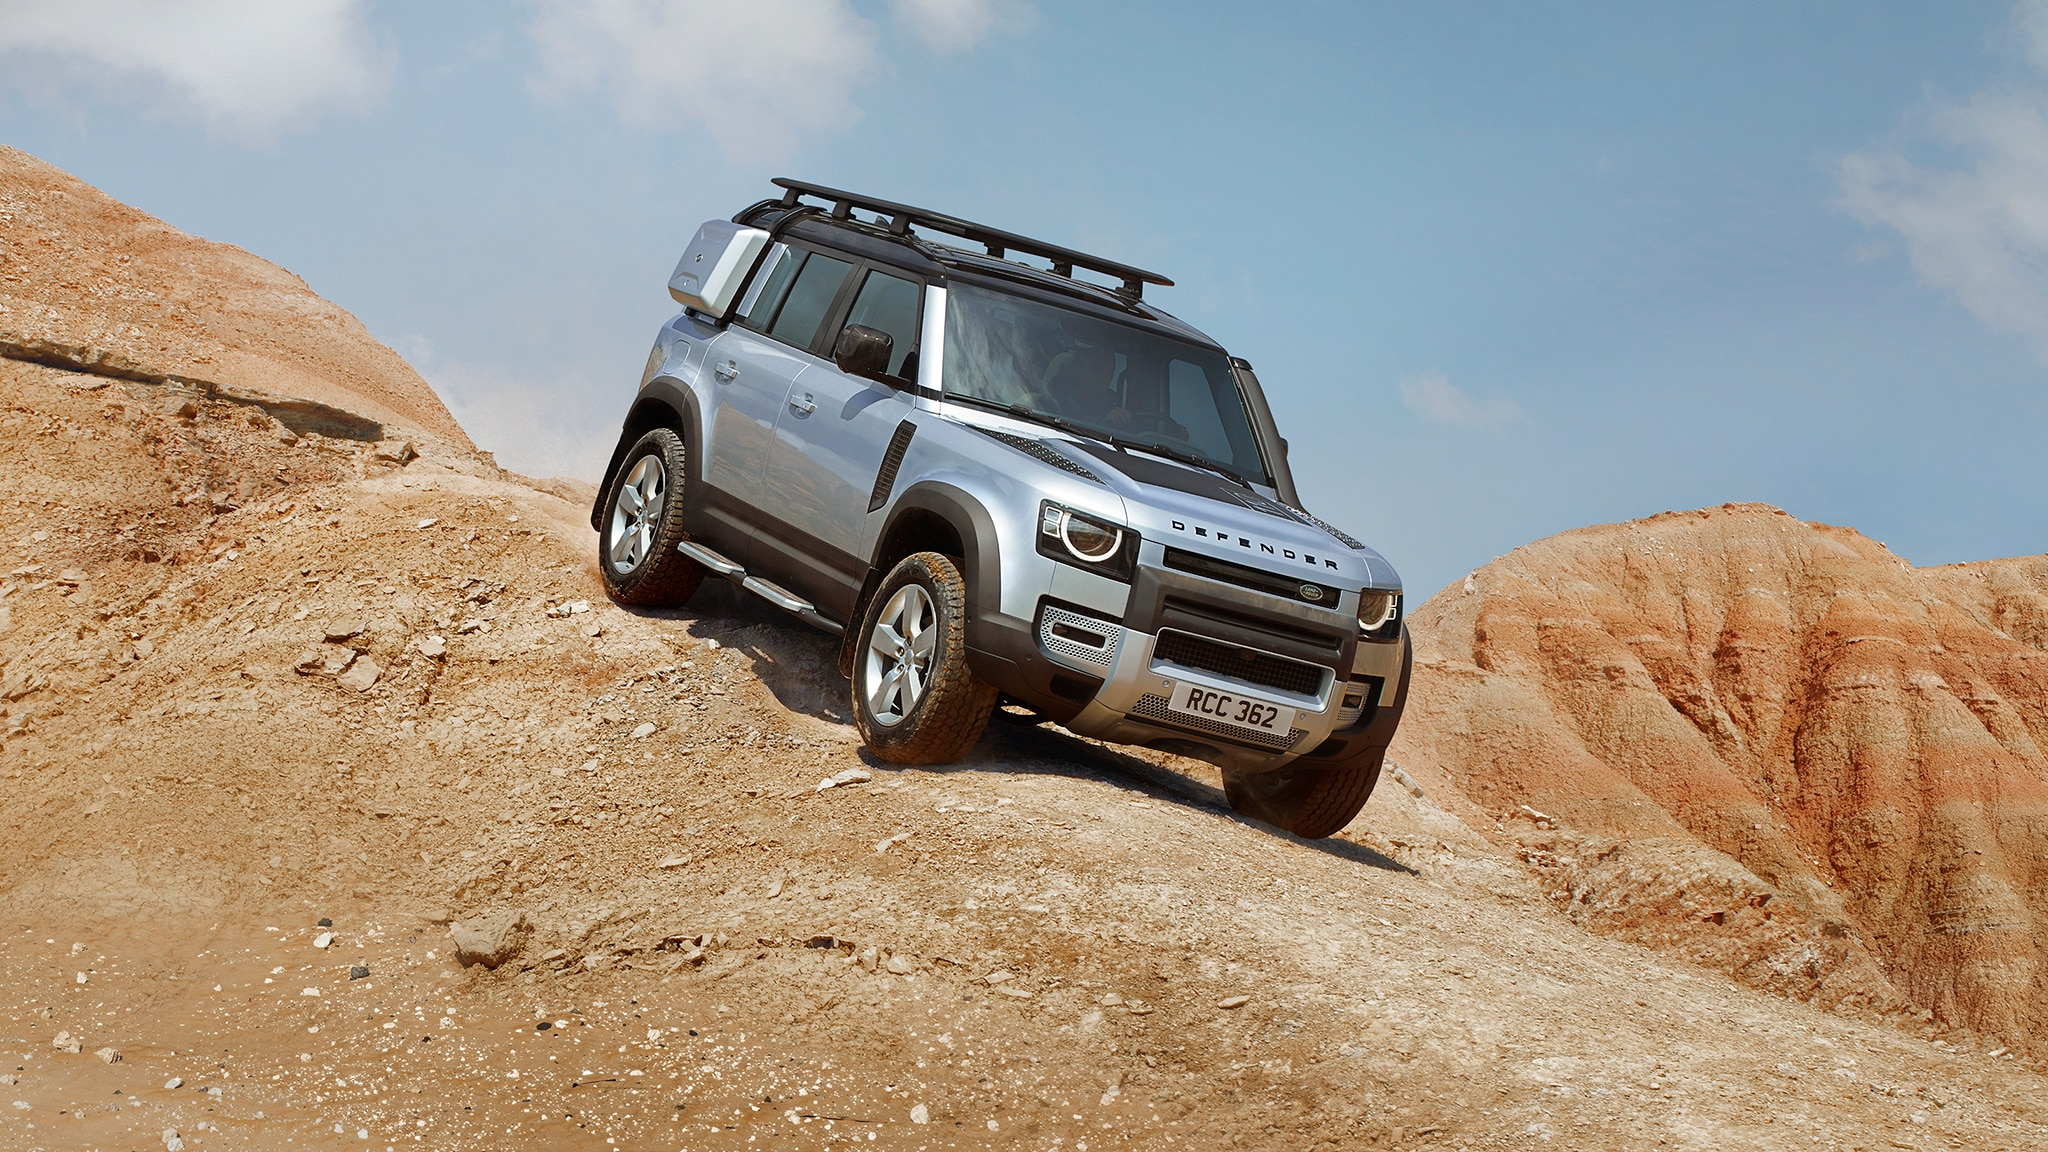 2020 Land Rover Defender: Pictures, Specs, Release Date +